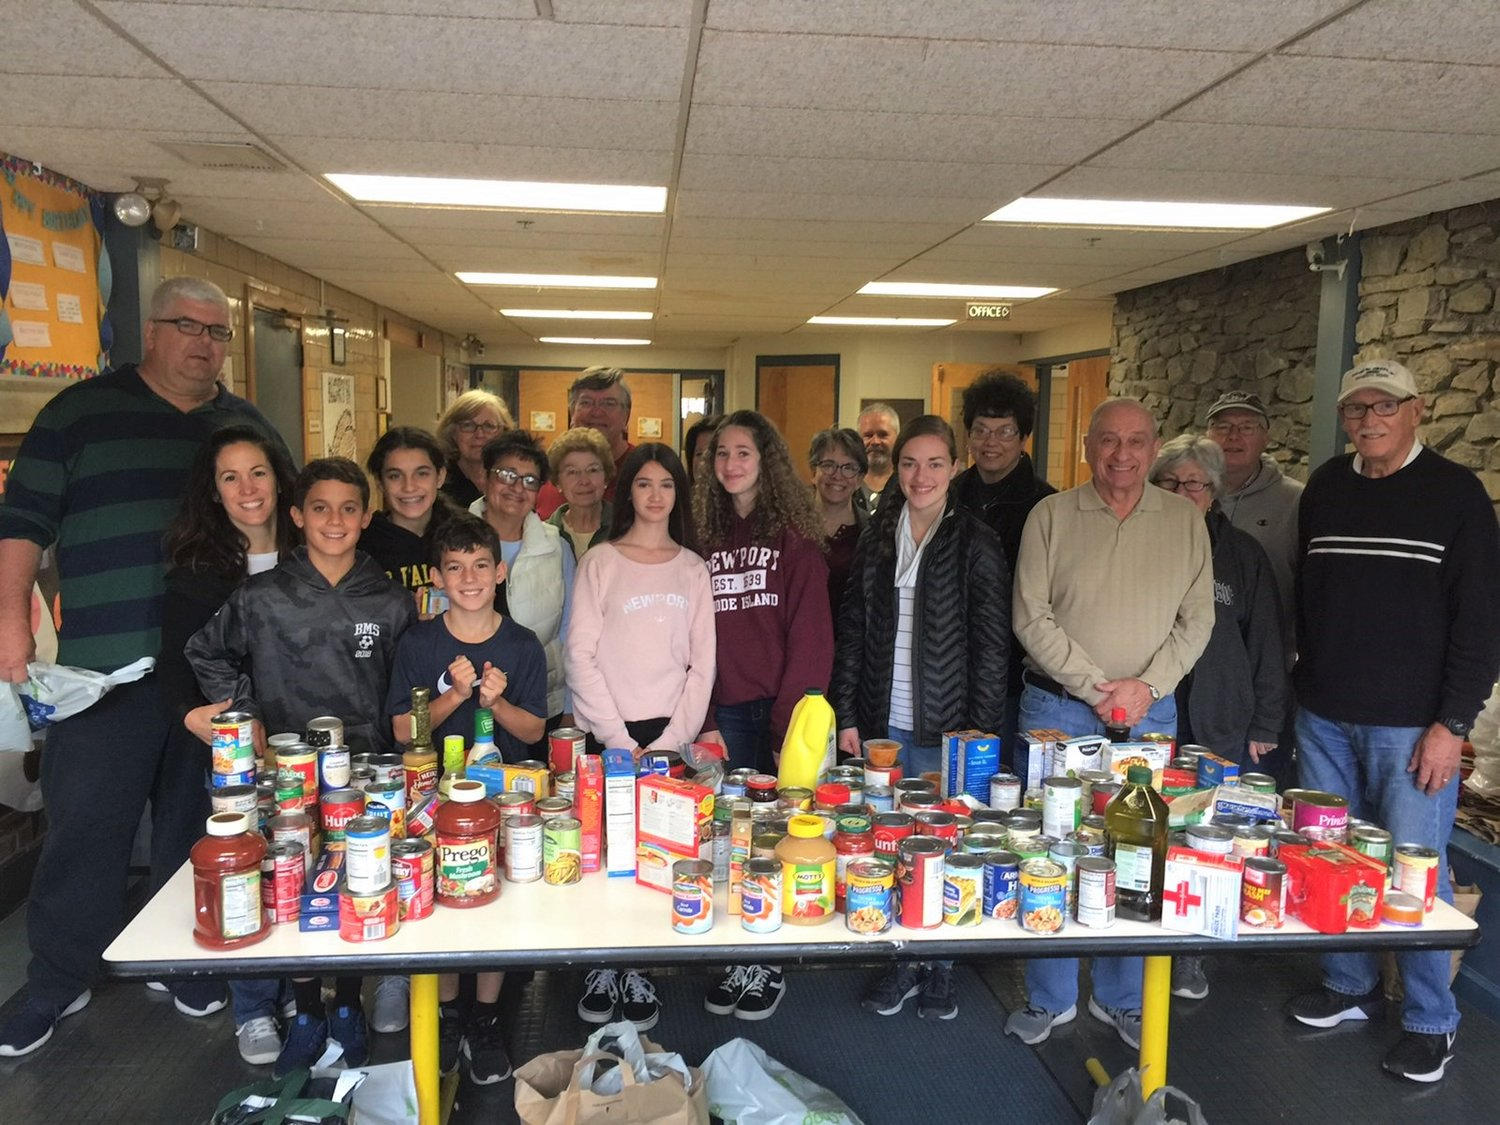 Volunteers from Our Lady of Mt Carmel and Doorways Food Pantry worked together to sort and store the food donated on the recent OLMC parish food drive. Contributions helped support pantries in both Seekonk and Rehoboth.